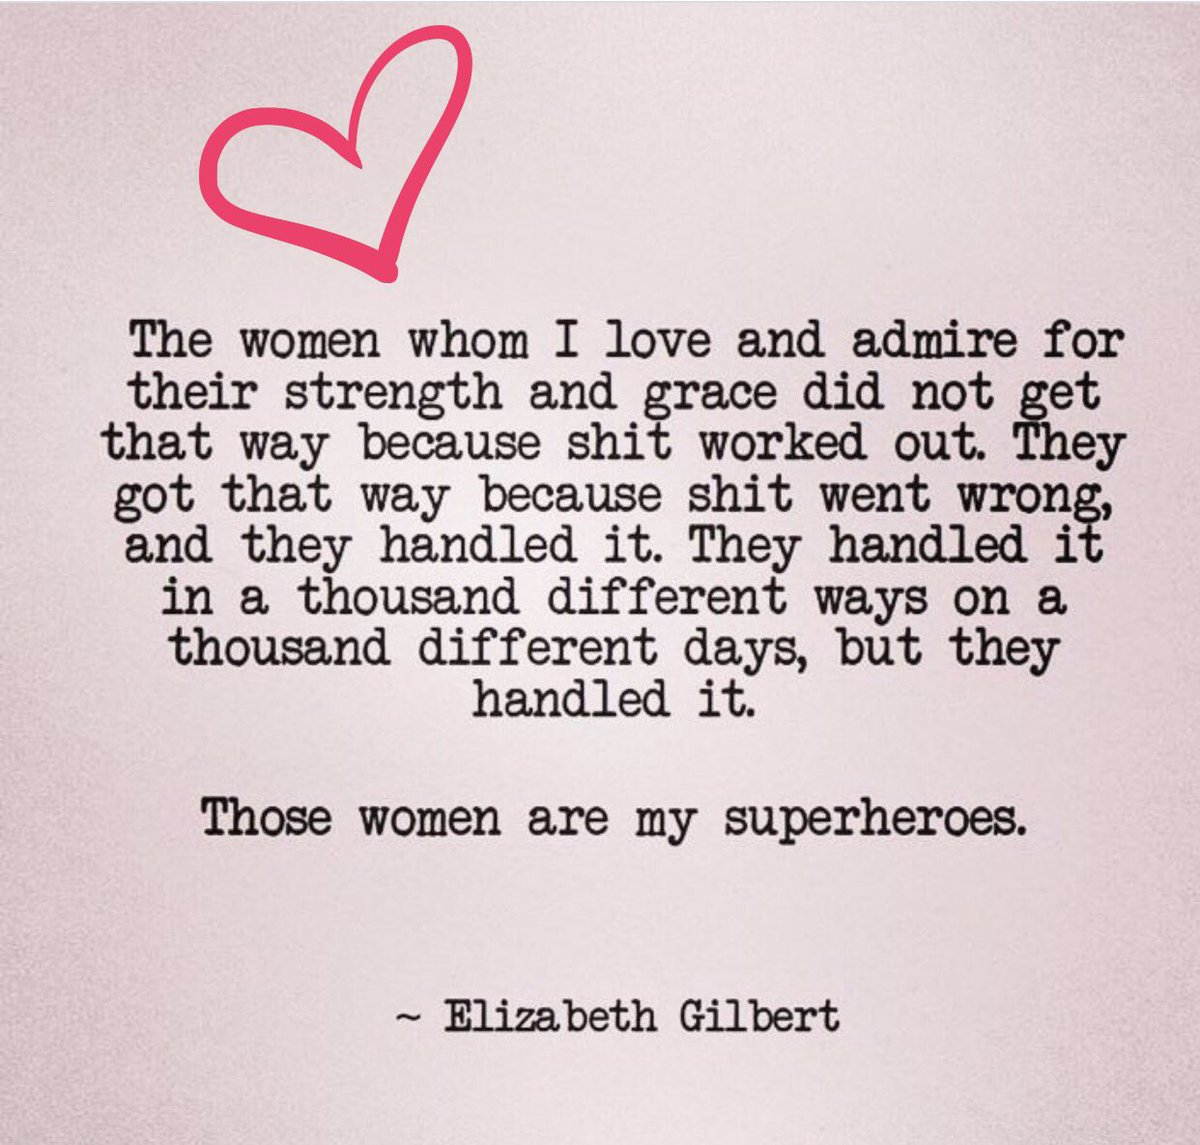 Happy #InternationalWomensDay to all the incredible women I'm blessed to be surrounded by! #YouAreYourTribe